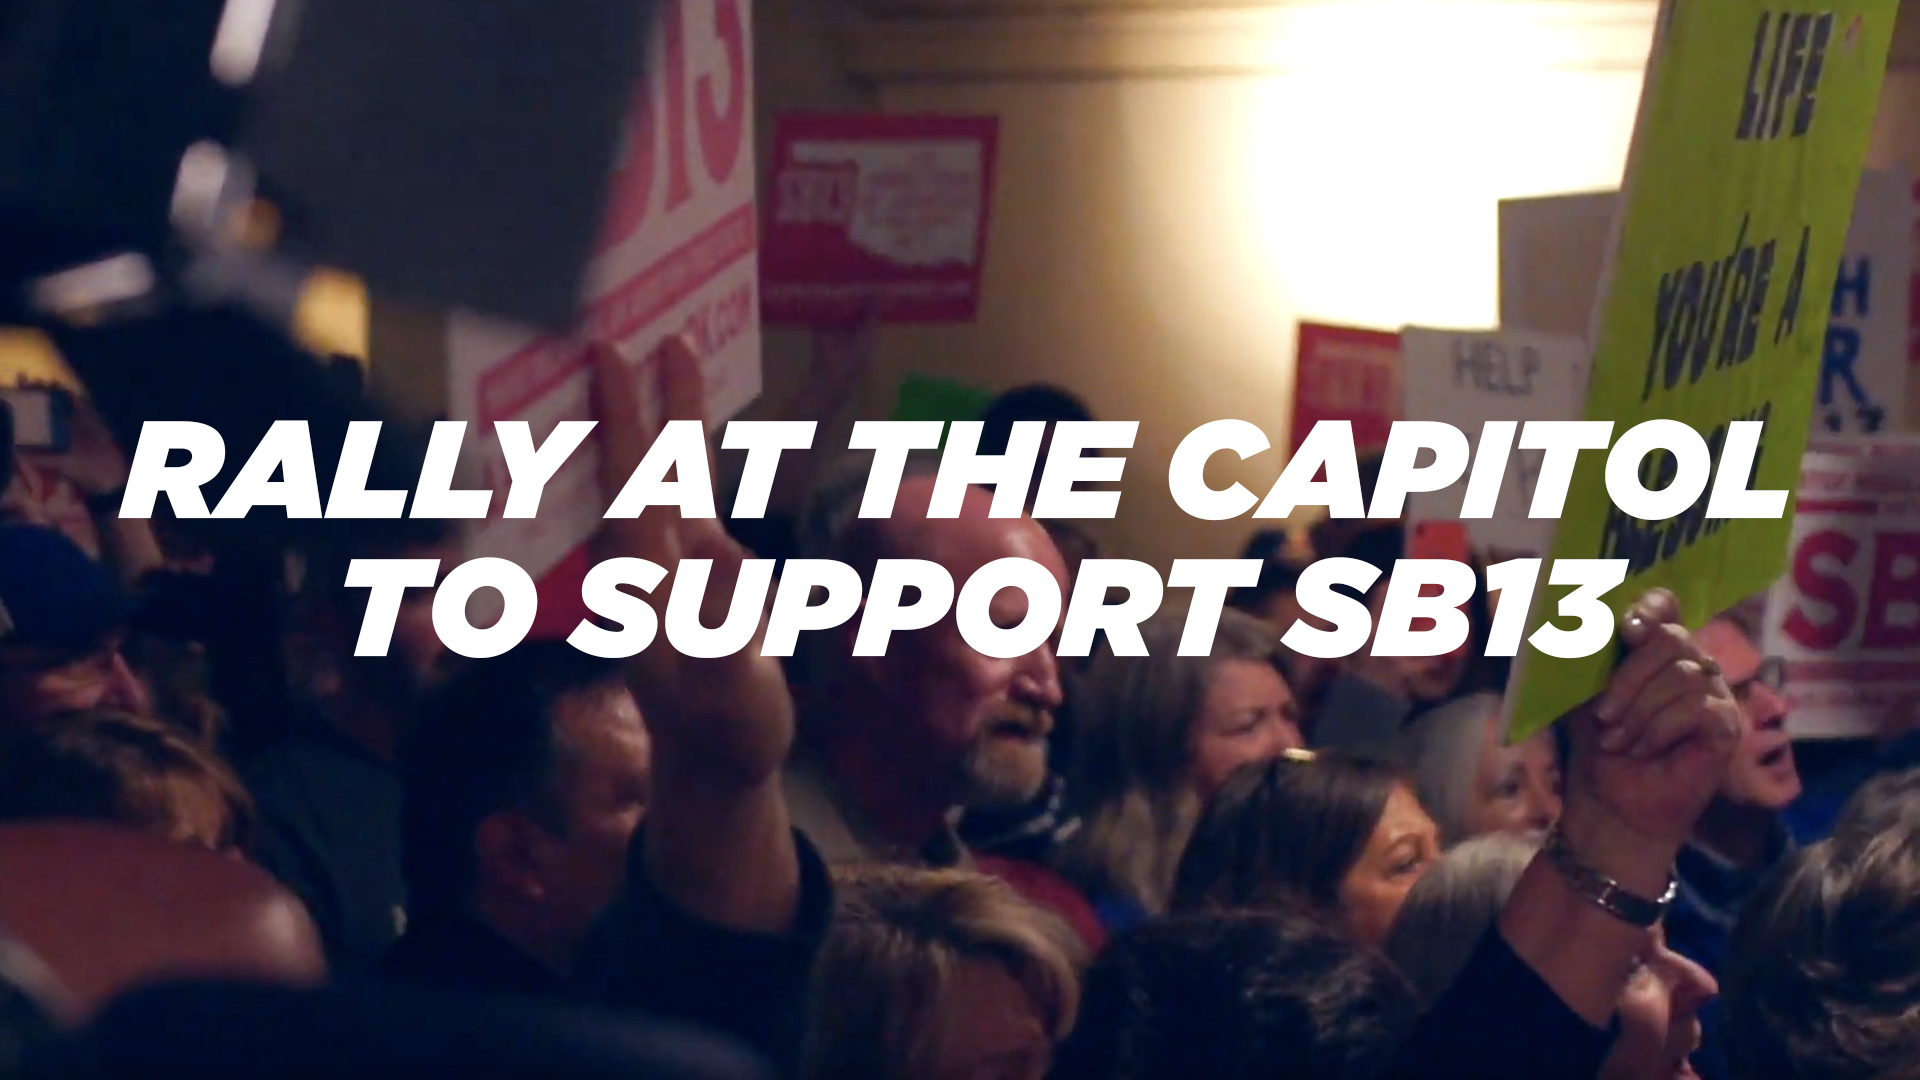 Rally at the Capitol to Support SB13